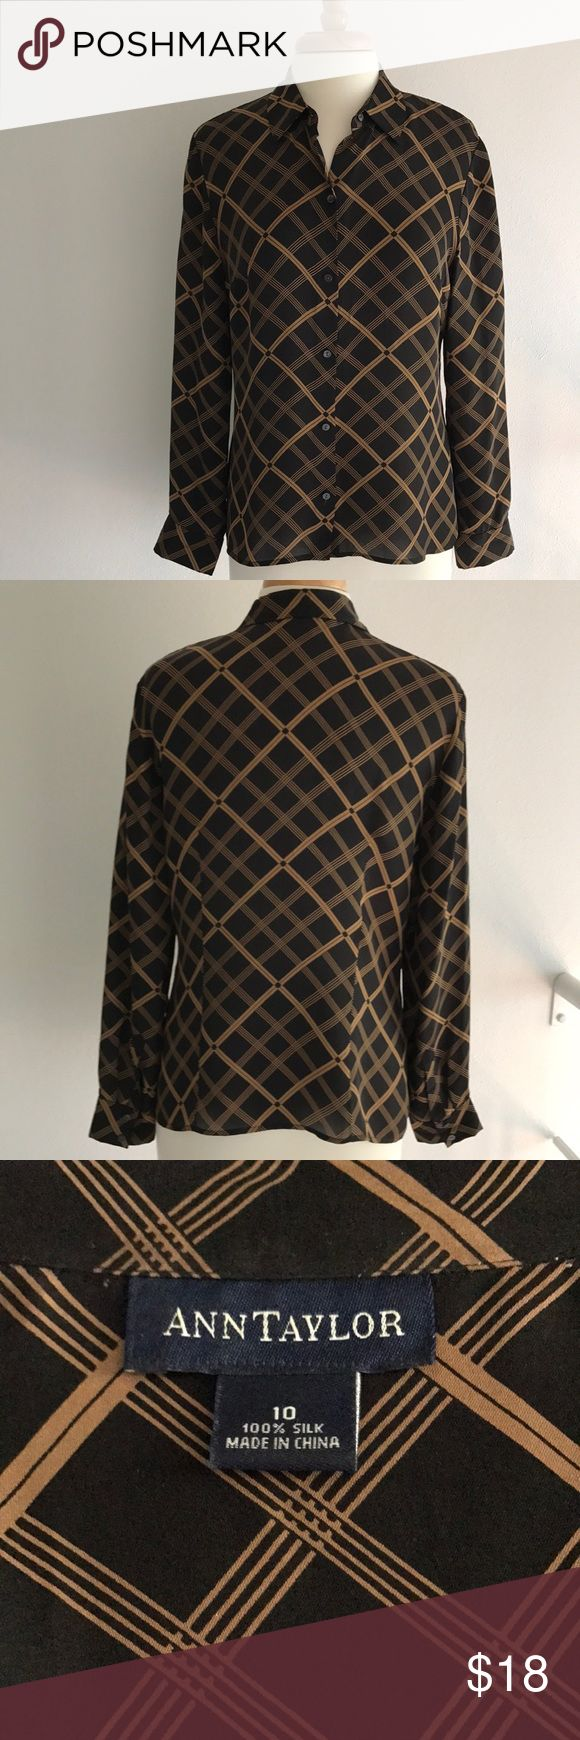 "Ann Taylor Silk Black/Camel Women's Blouse Ann Taylor black/camel silk button front blouse ~ perfect with or without jacket / sweater ~ great condition ~ dry clean   Measurements ~ approx laying flat: Armpit to armpit ~ 20"" Length from front shoulder ~ 24.5"" Sleeve from shoulder ~ 24"" Ann Taylor Tops Blouses"